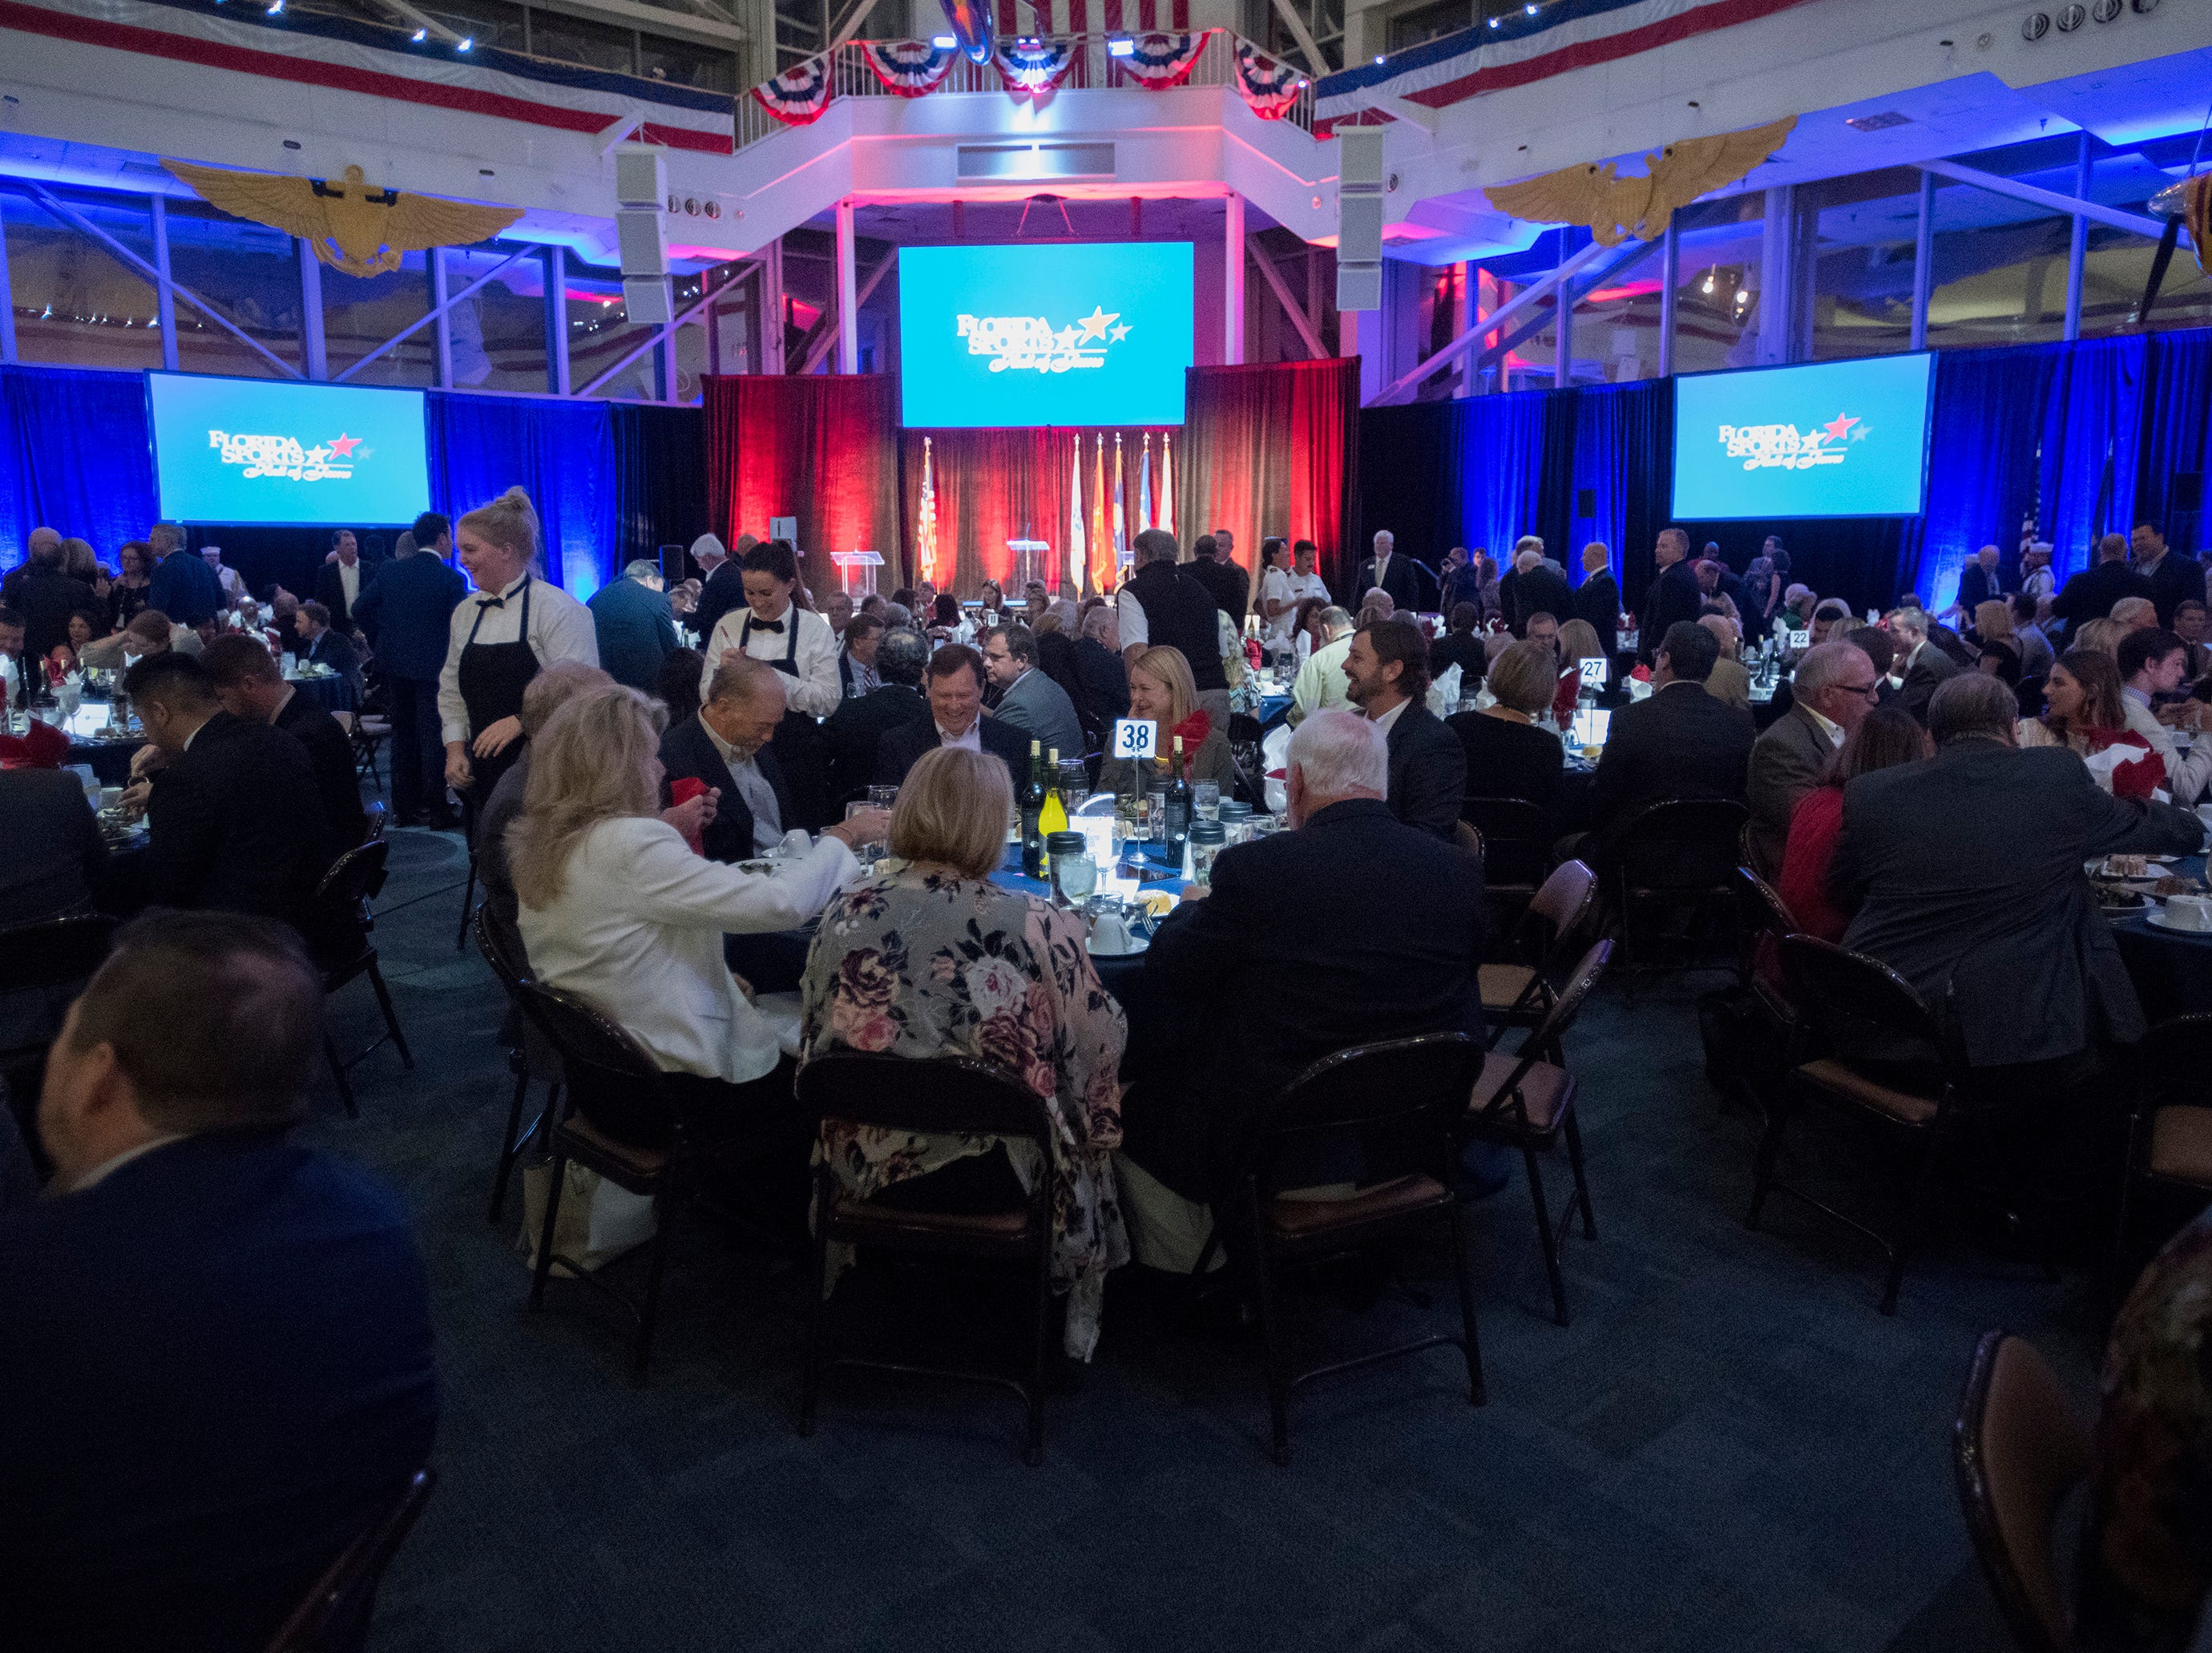 Sports fans, athletes and enthusiasts arrive at the National Naval Aviation Museum on board Naval Air Station Pensacola for the 218 Florida Sports Hall of Fame Enshrinement Ceremony on Wednesday, Nov. 7, 2018.